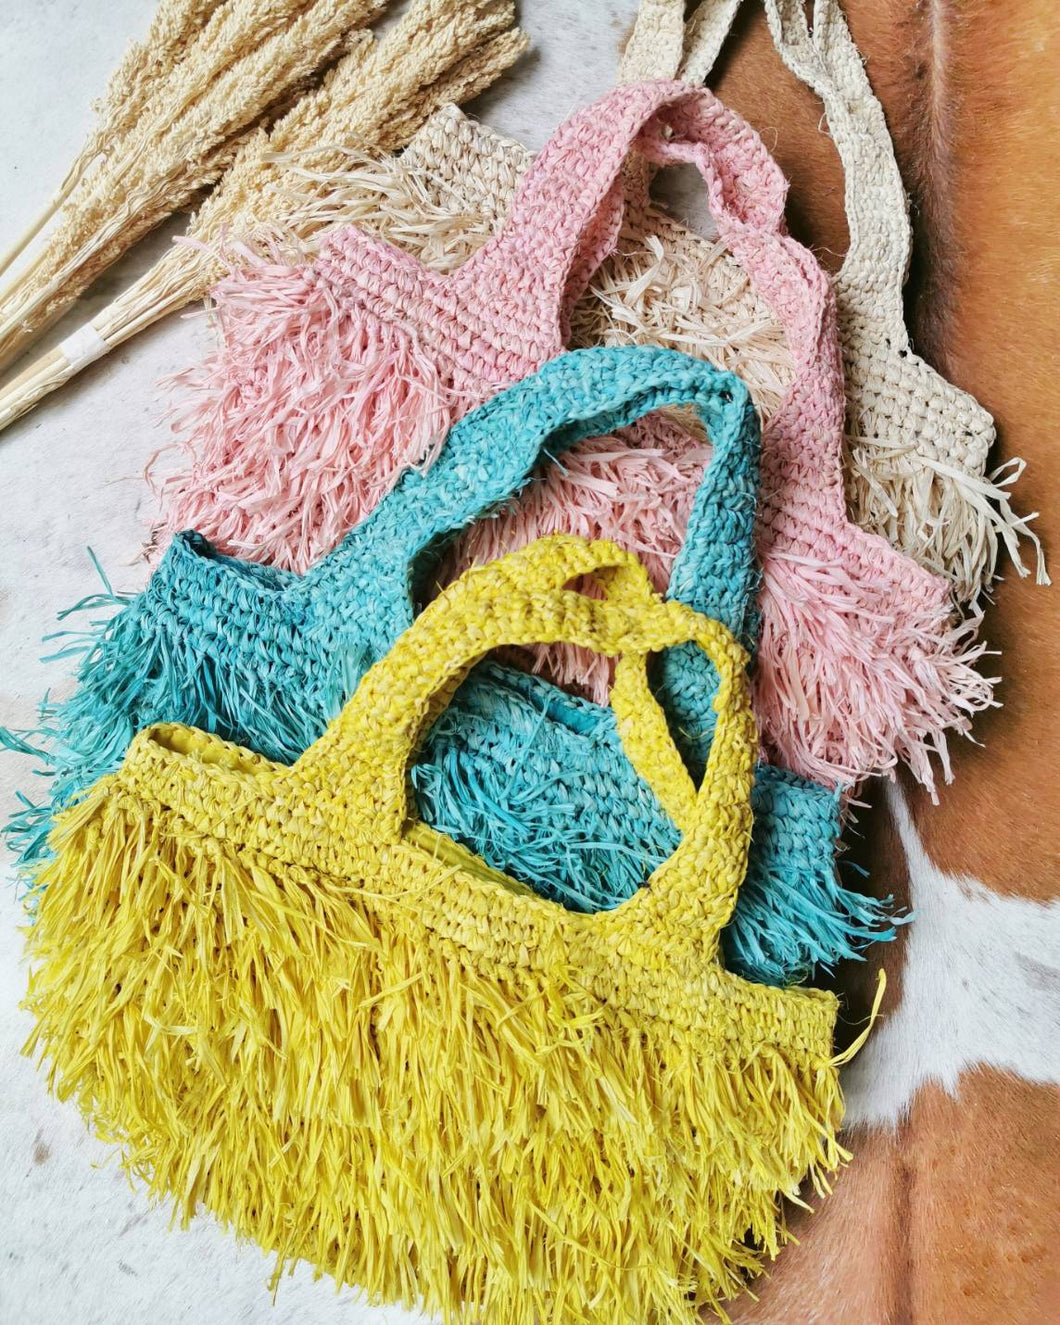 All of our Raffia Bali bags are handcrafted by local Balinese artisans using natural raffia, giving you a lasting one-of-a-kind product